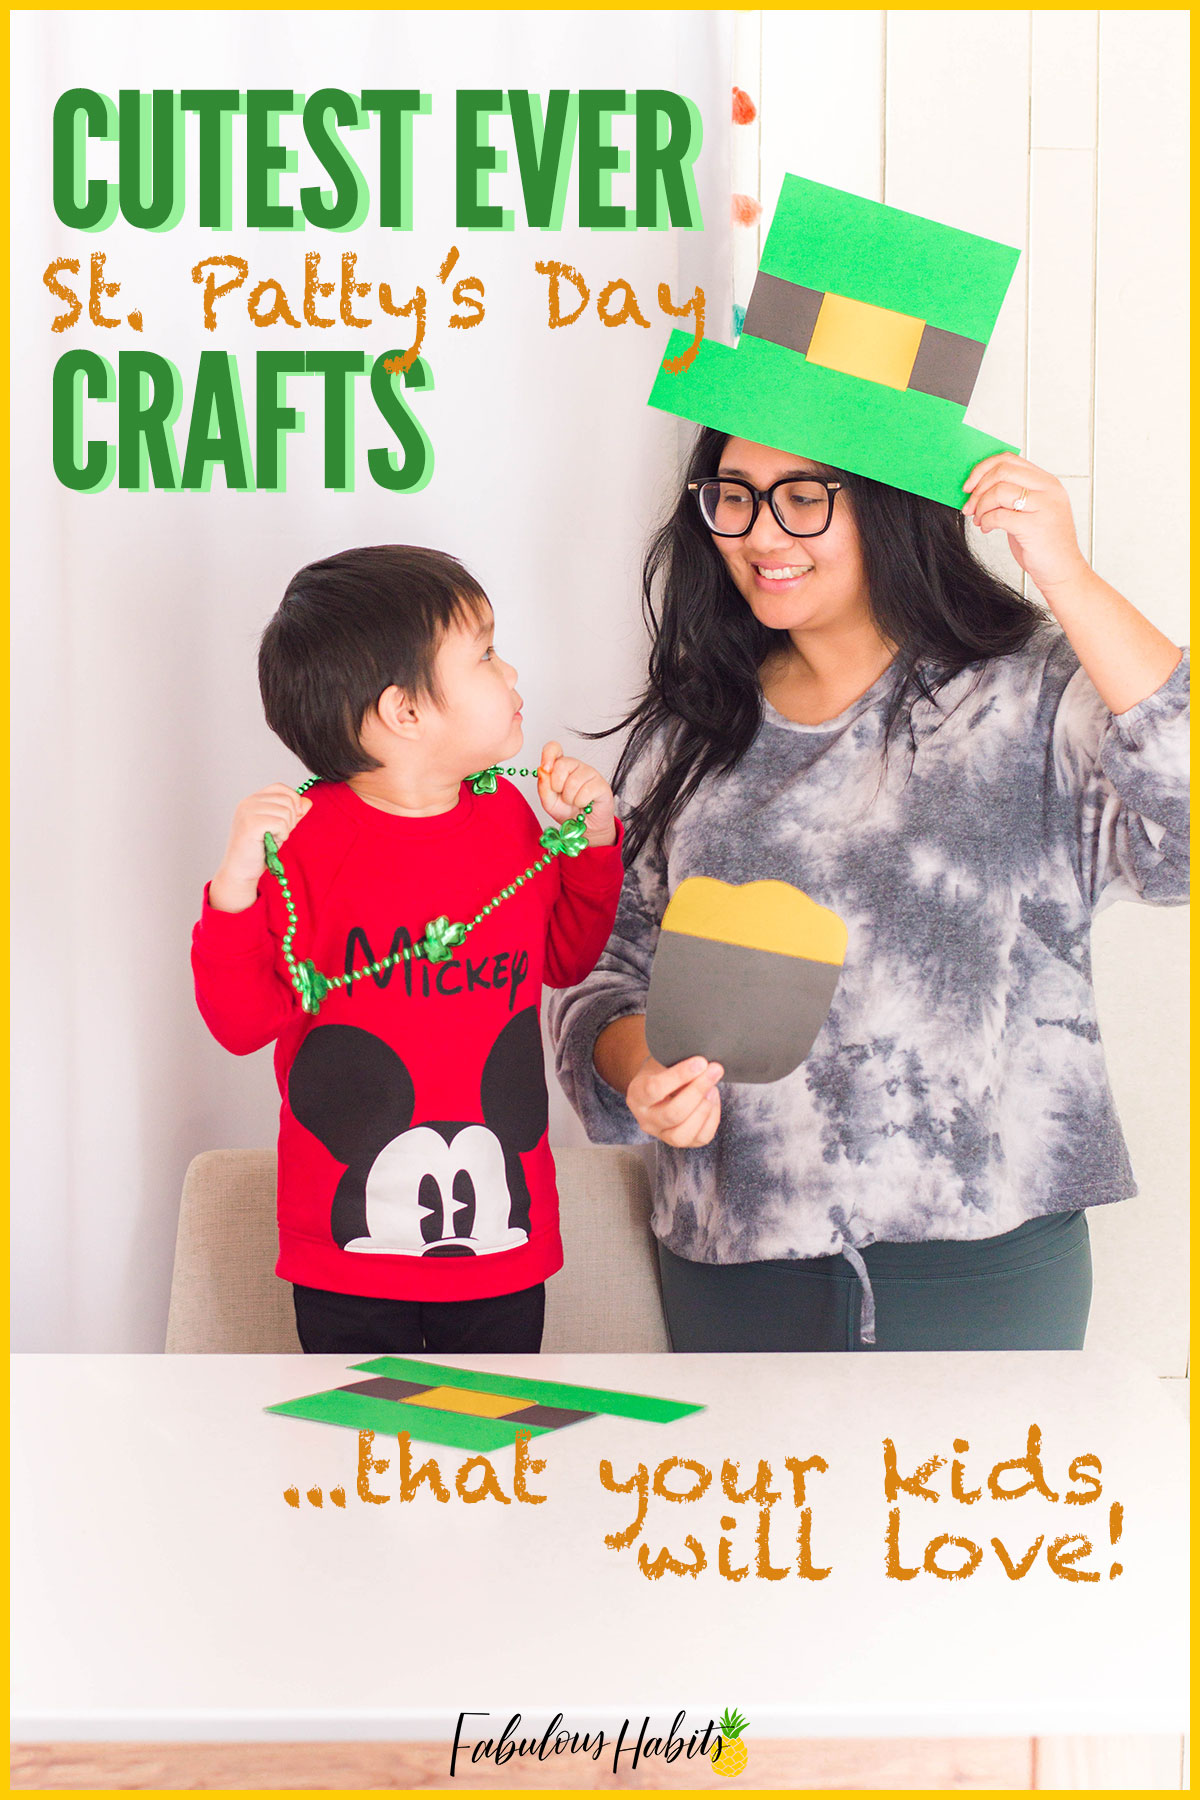 I found some of the cutest St. Patrick's Day crafts that your little one will absolutely adore making! Feel lucky with these 5 kid-friendly St. Patty's activities. #StPatricksDay